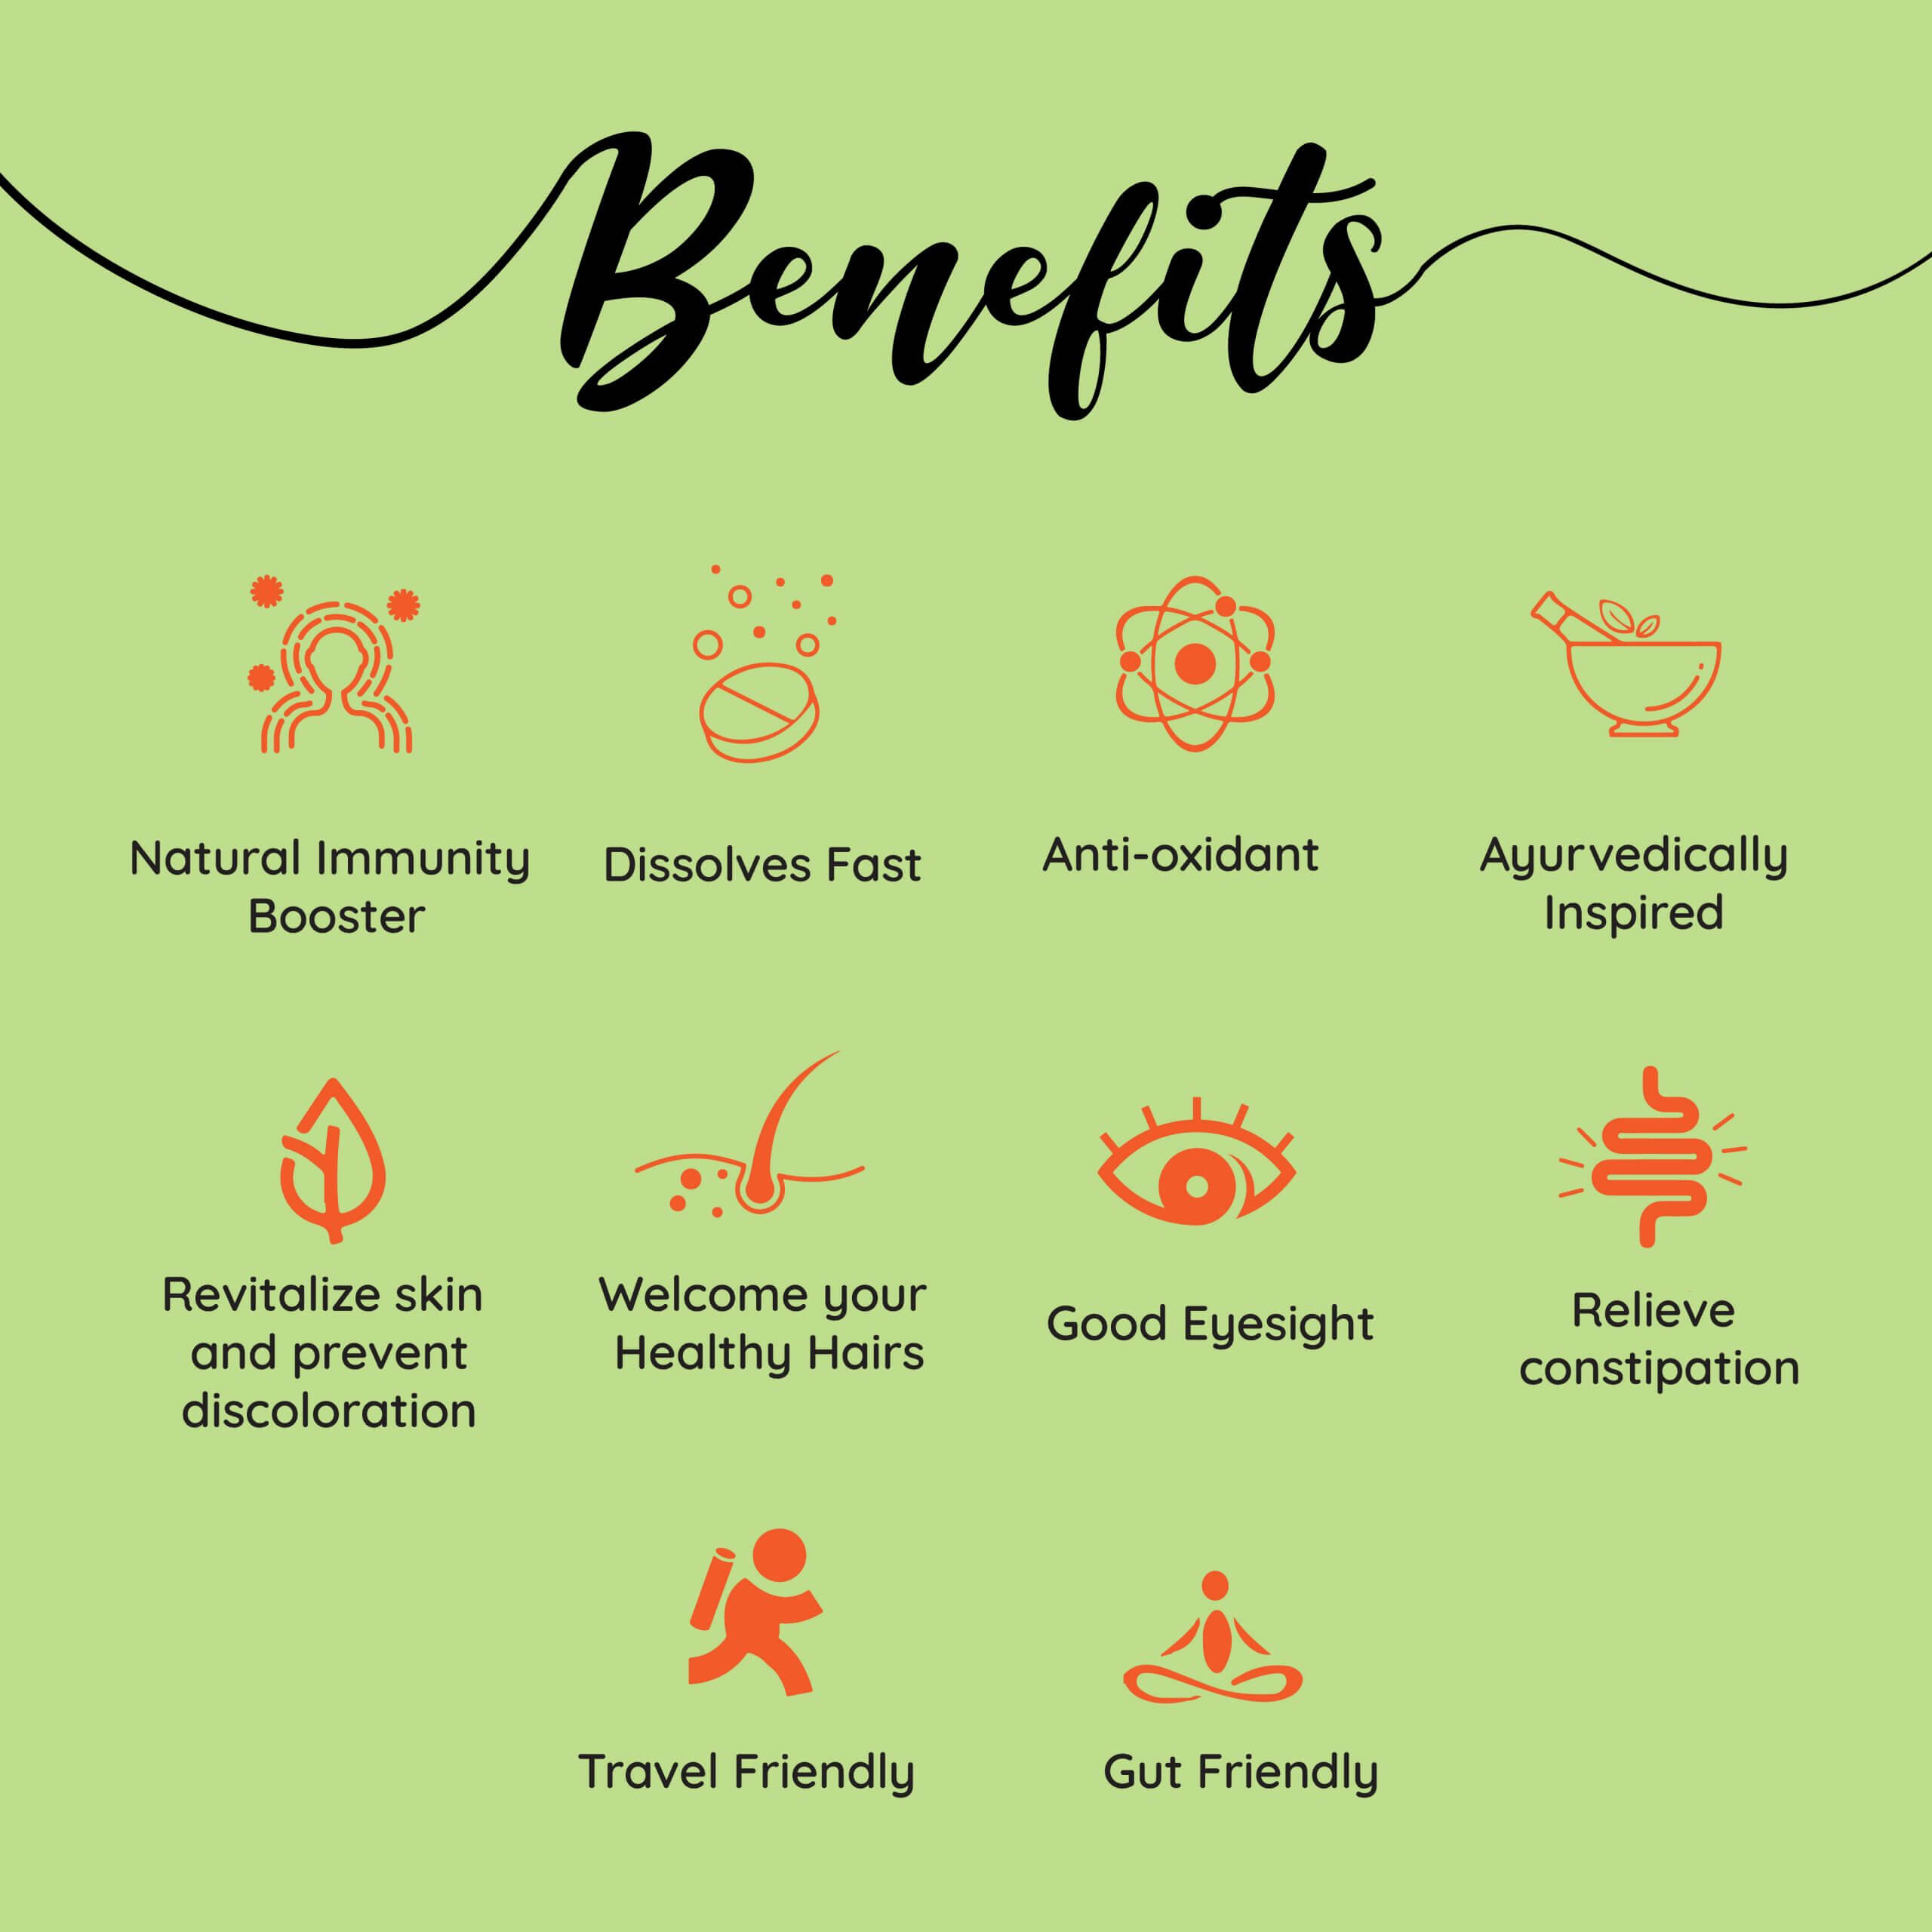 benefits_images7